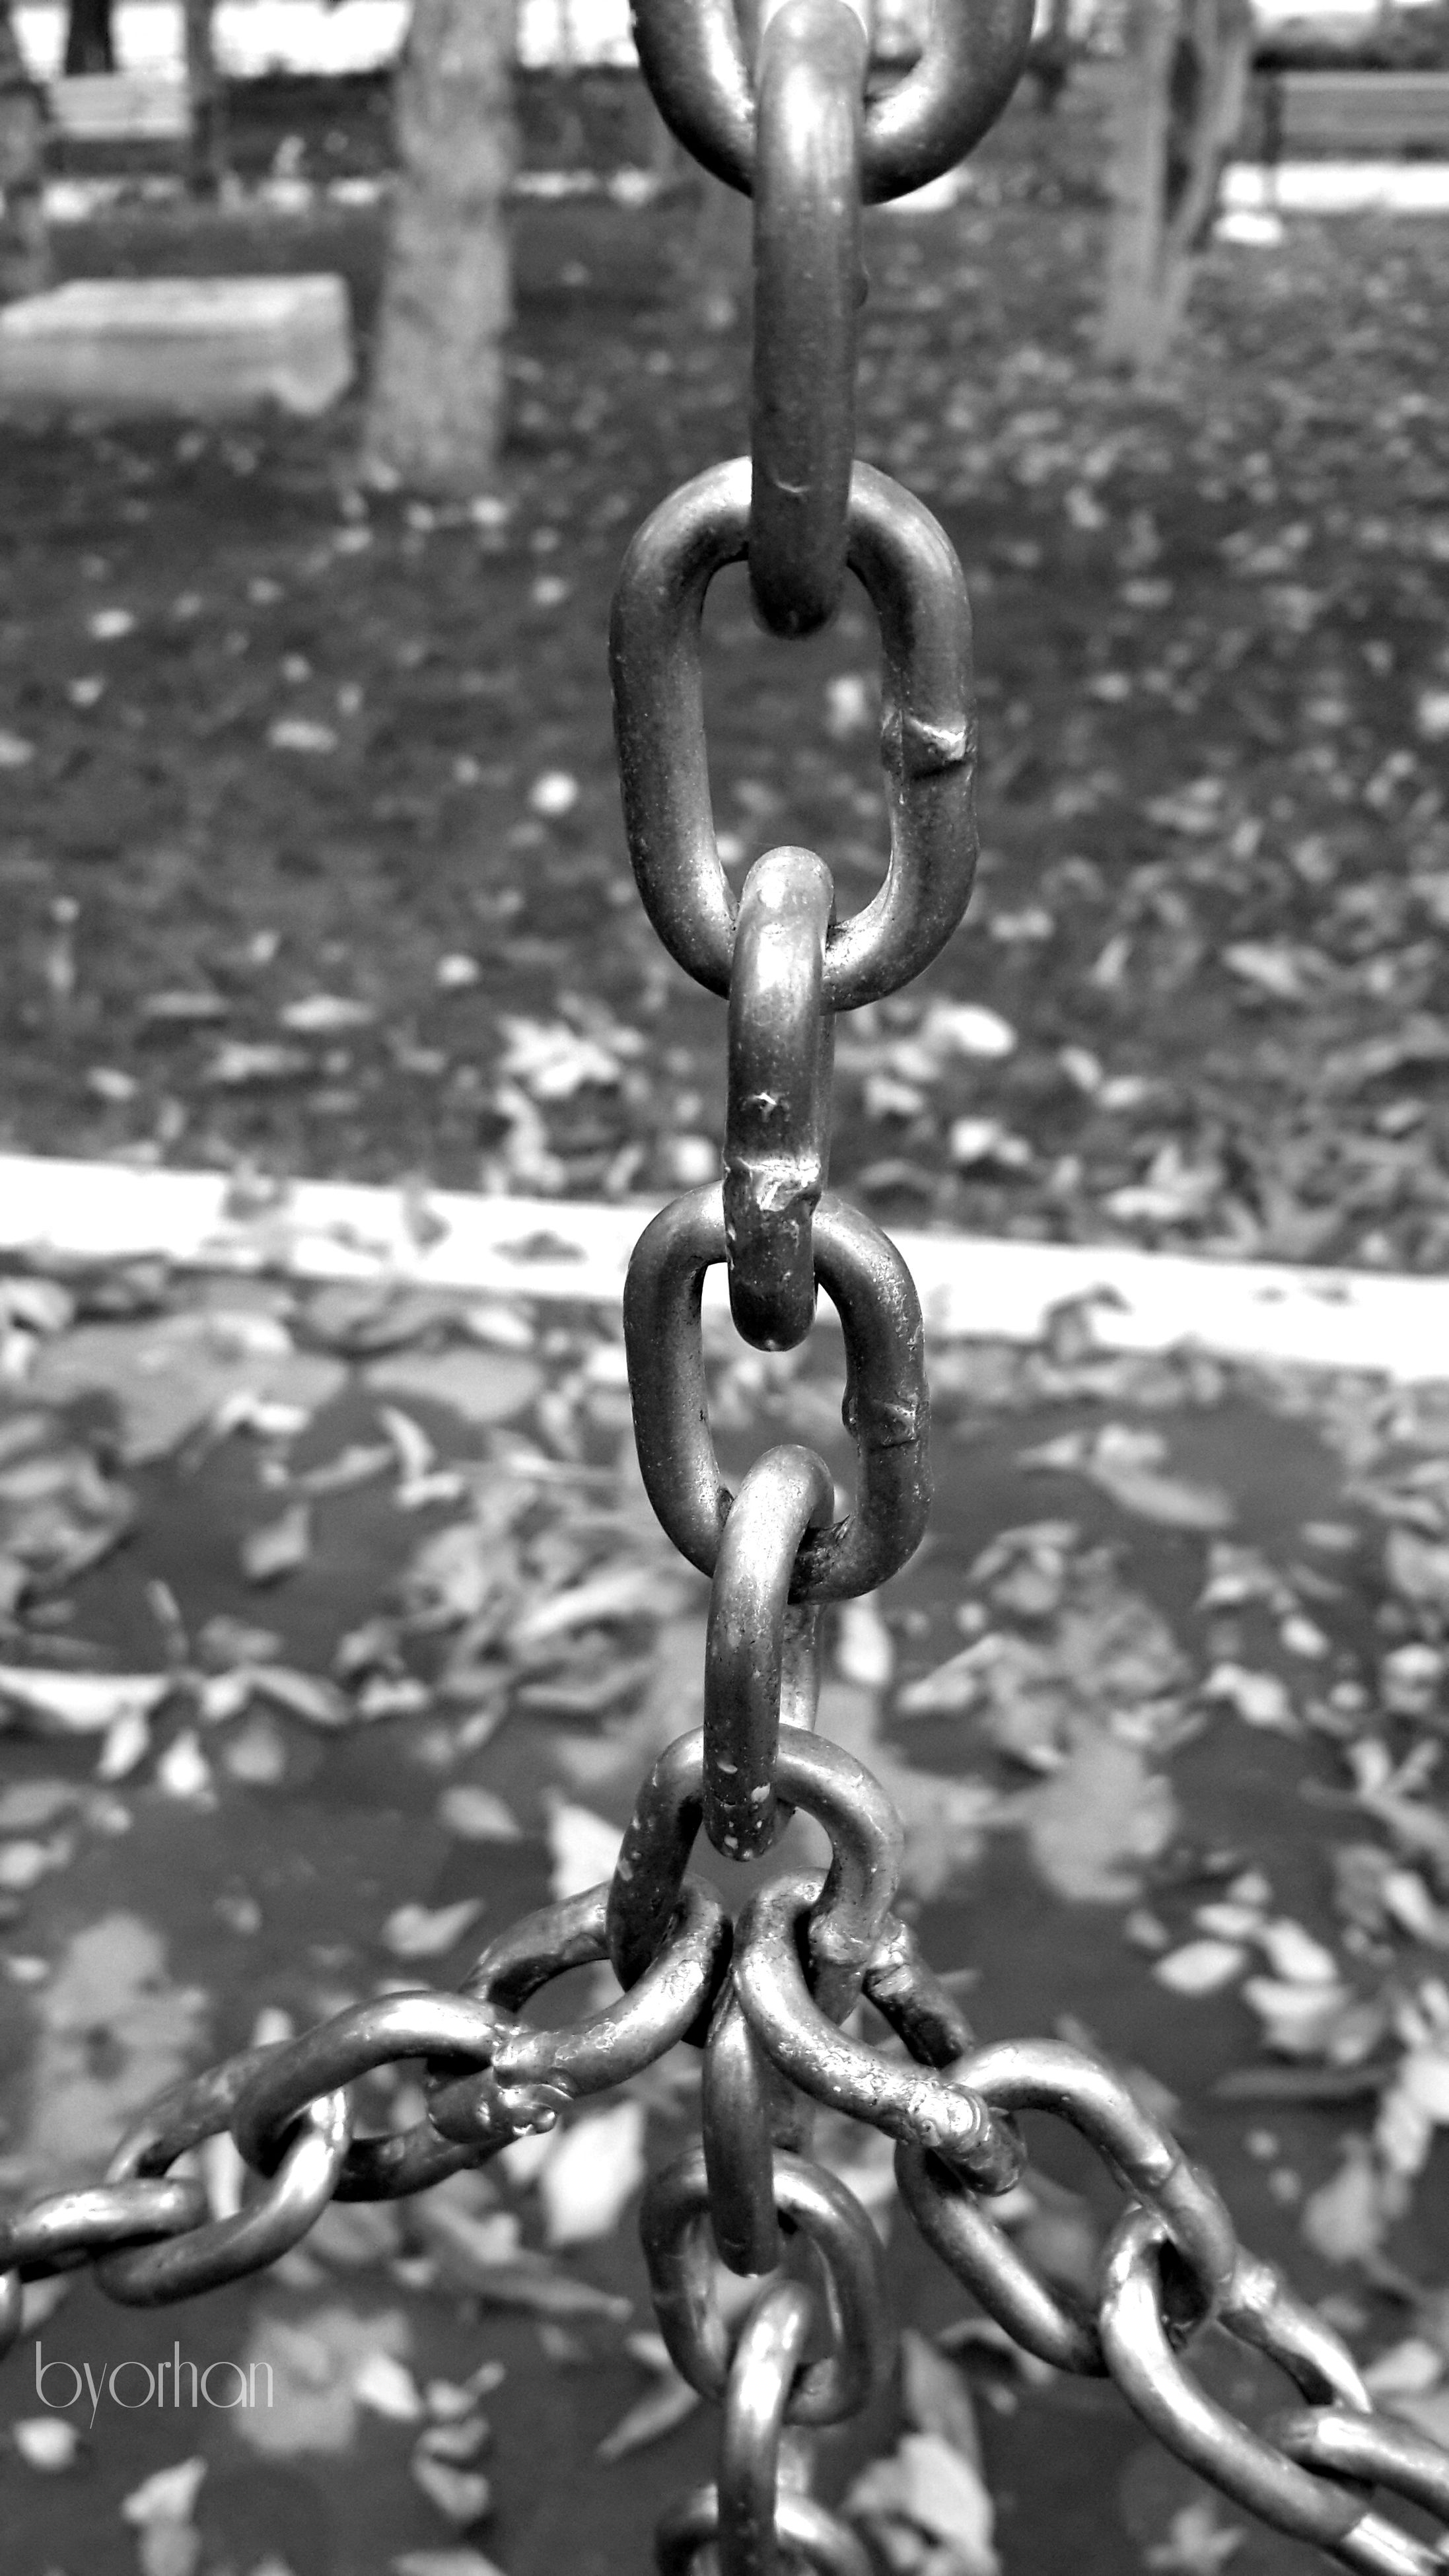 metal, chain, metallic, water, close-up, focus on foreground, protection, safety, security, padlock, strength, rusty, drop, lock, wet, connection, day, outdoors, rain, full frame